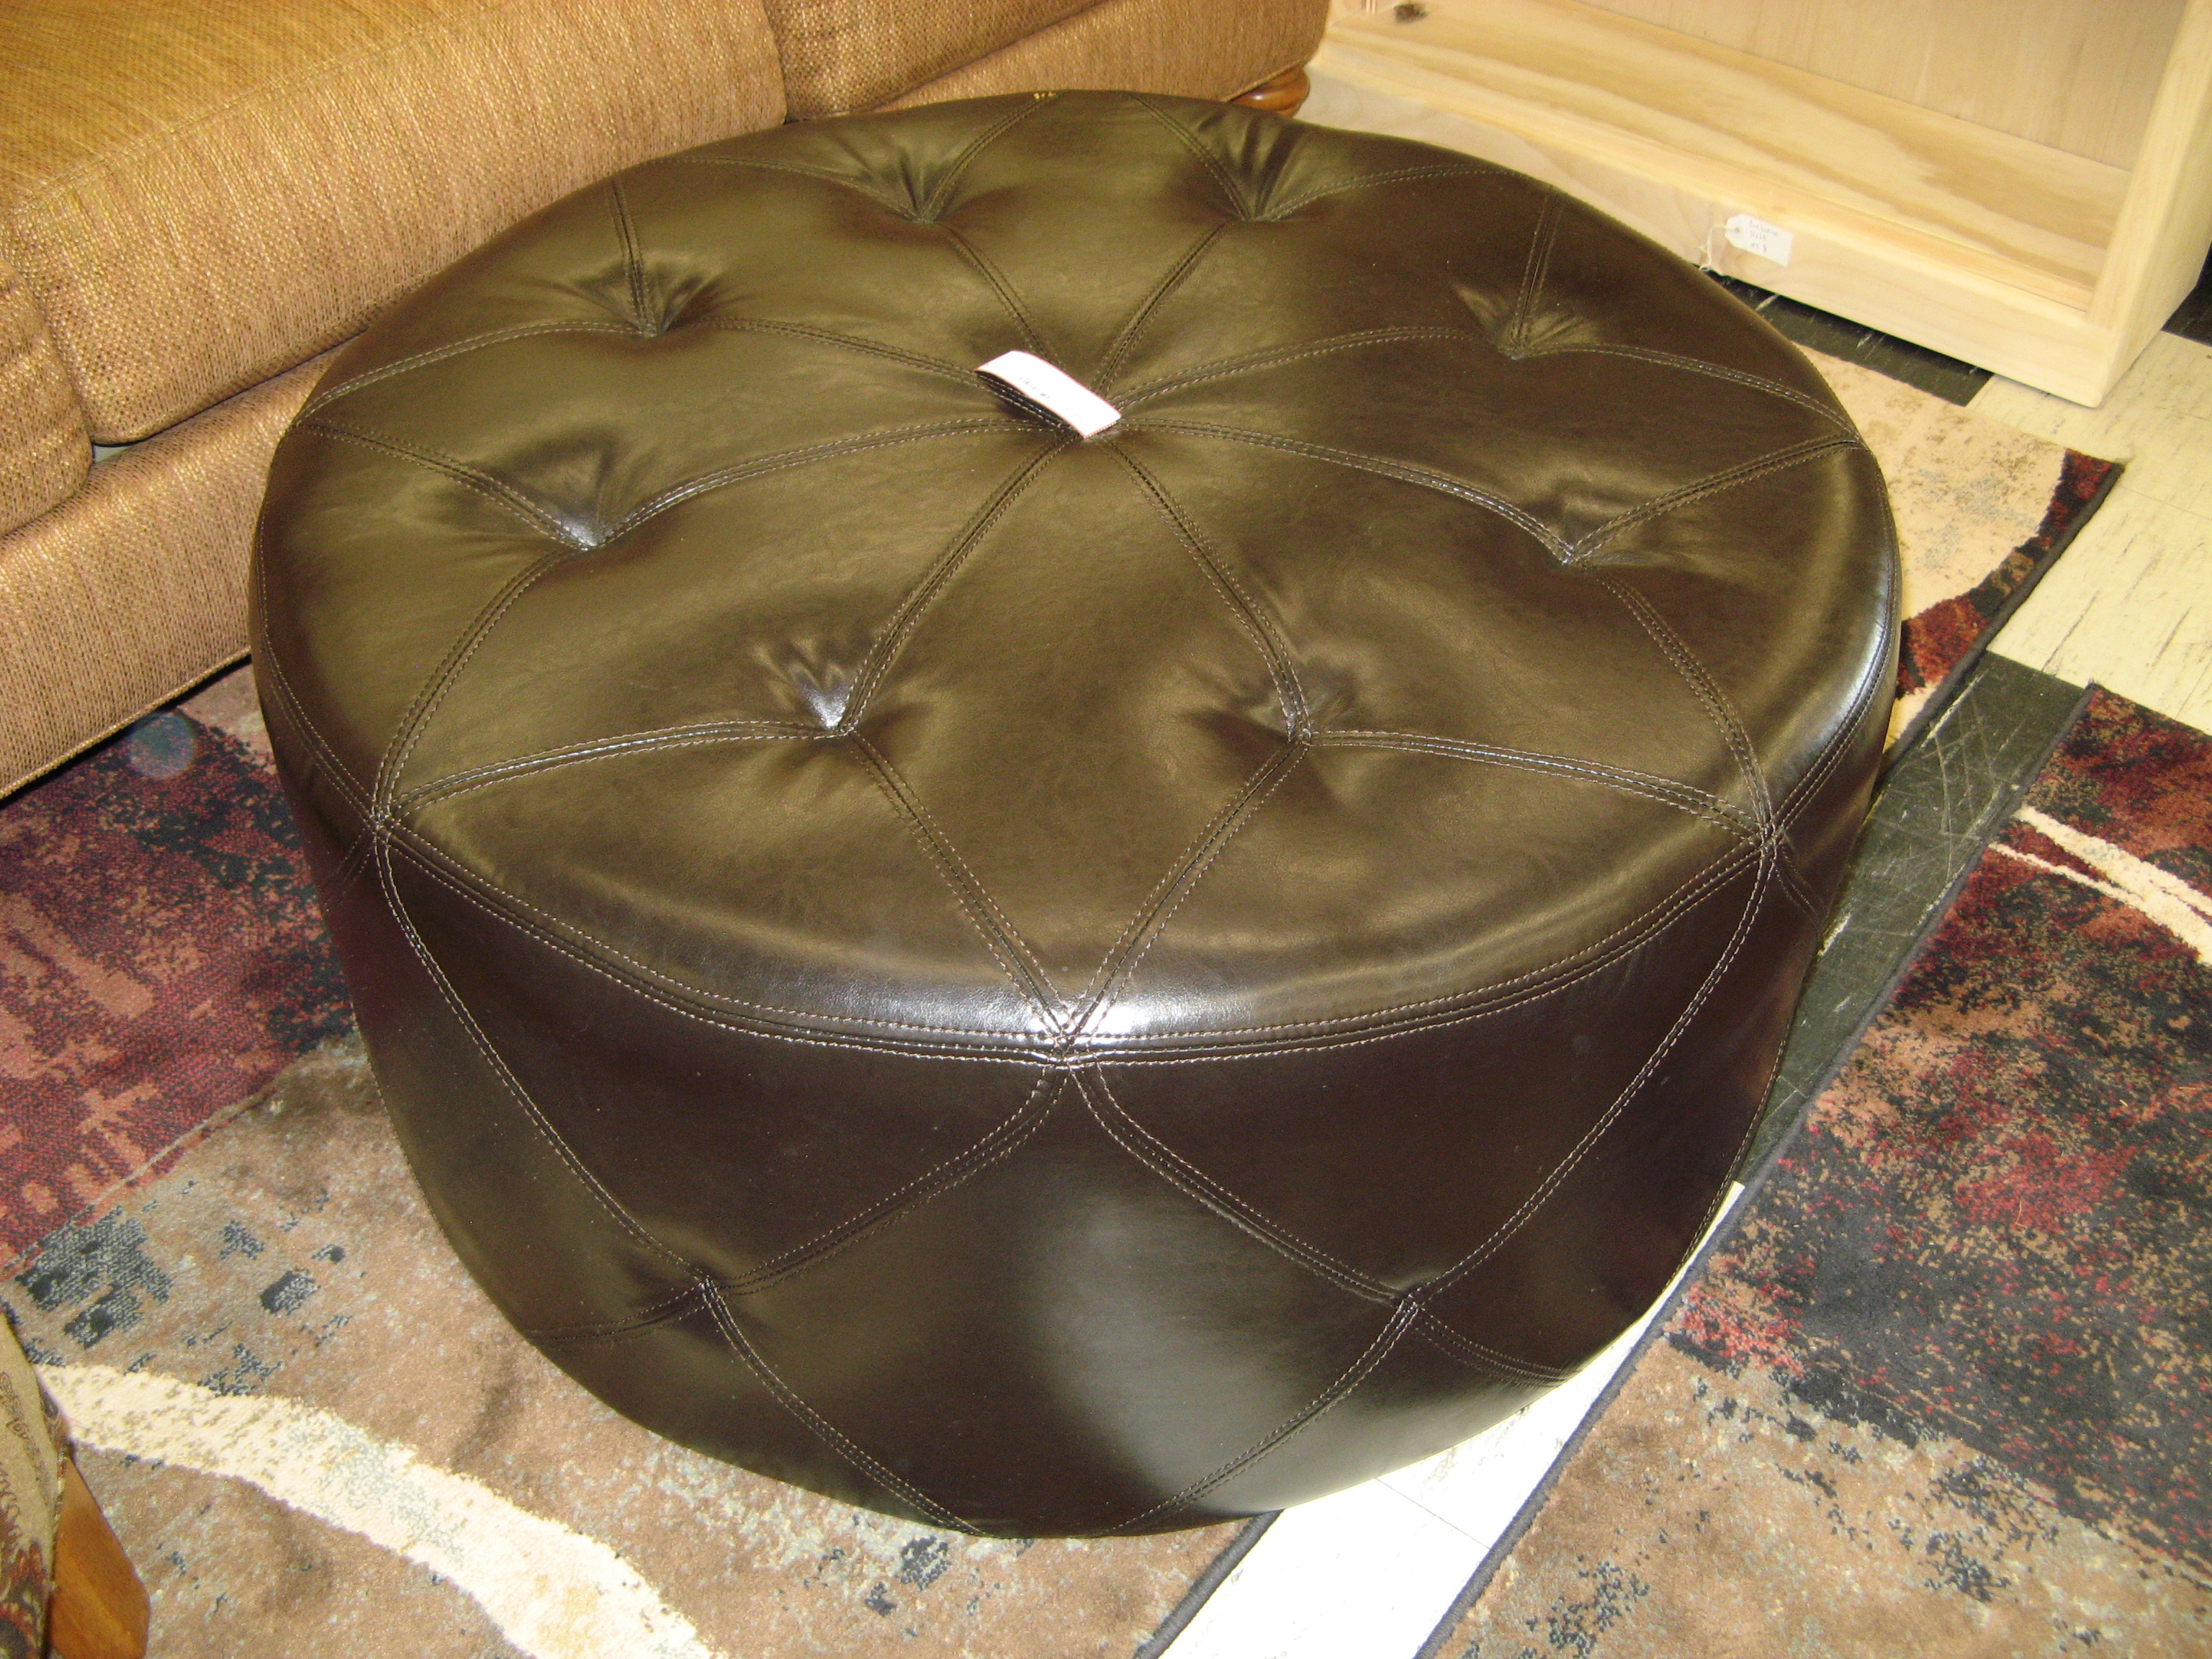 Faux Leather Round Ottoman, Espresso Brown (35